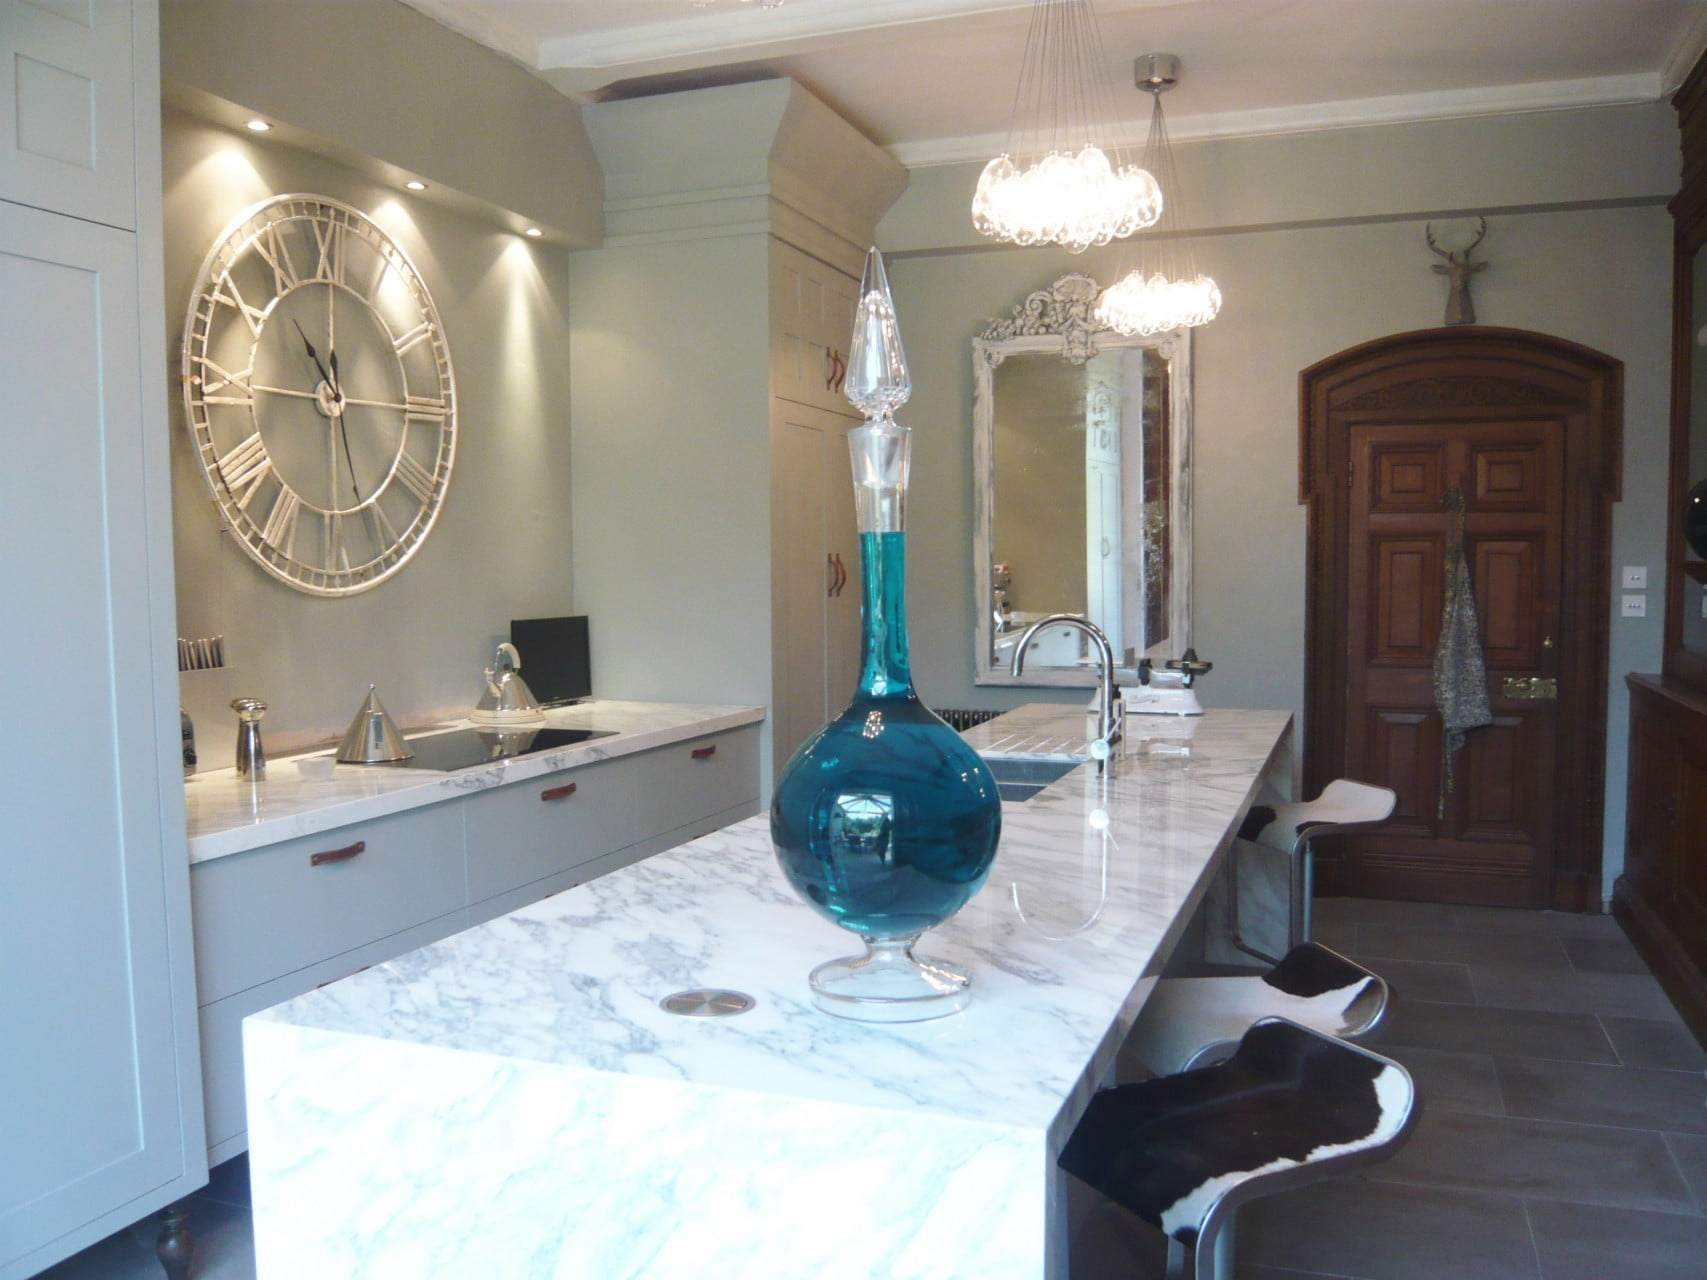 We redid the kitchen of our Victorian house & here it is now complete. We used marble & stone & clusters of globe lights . I don't just design gardens!